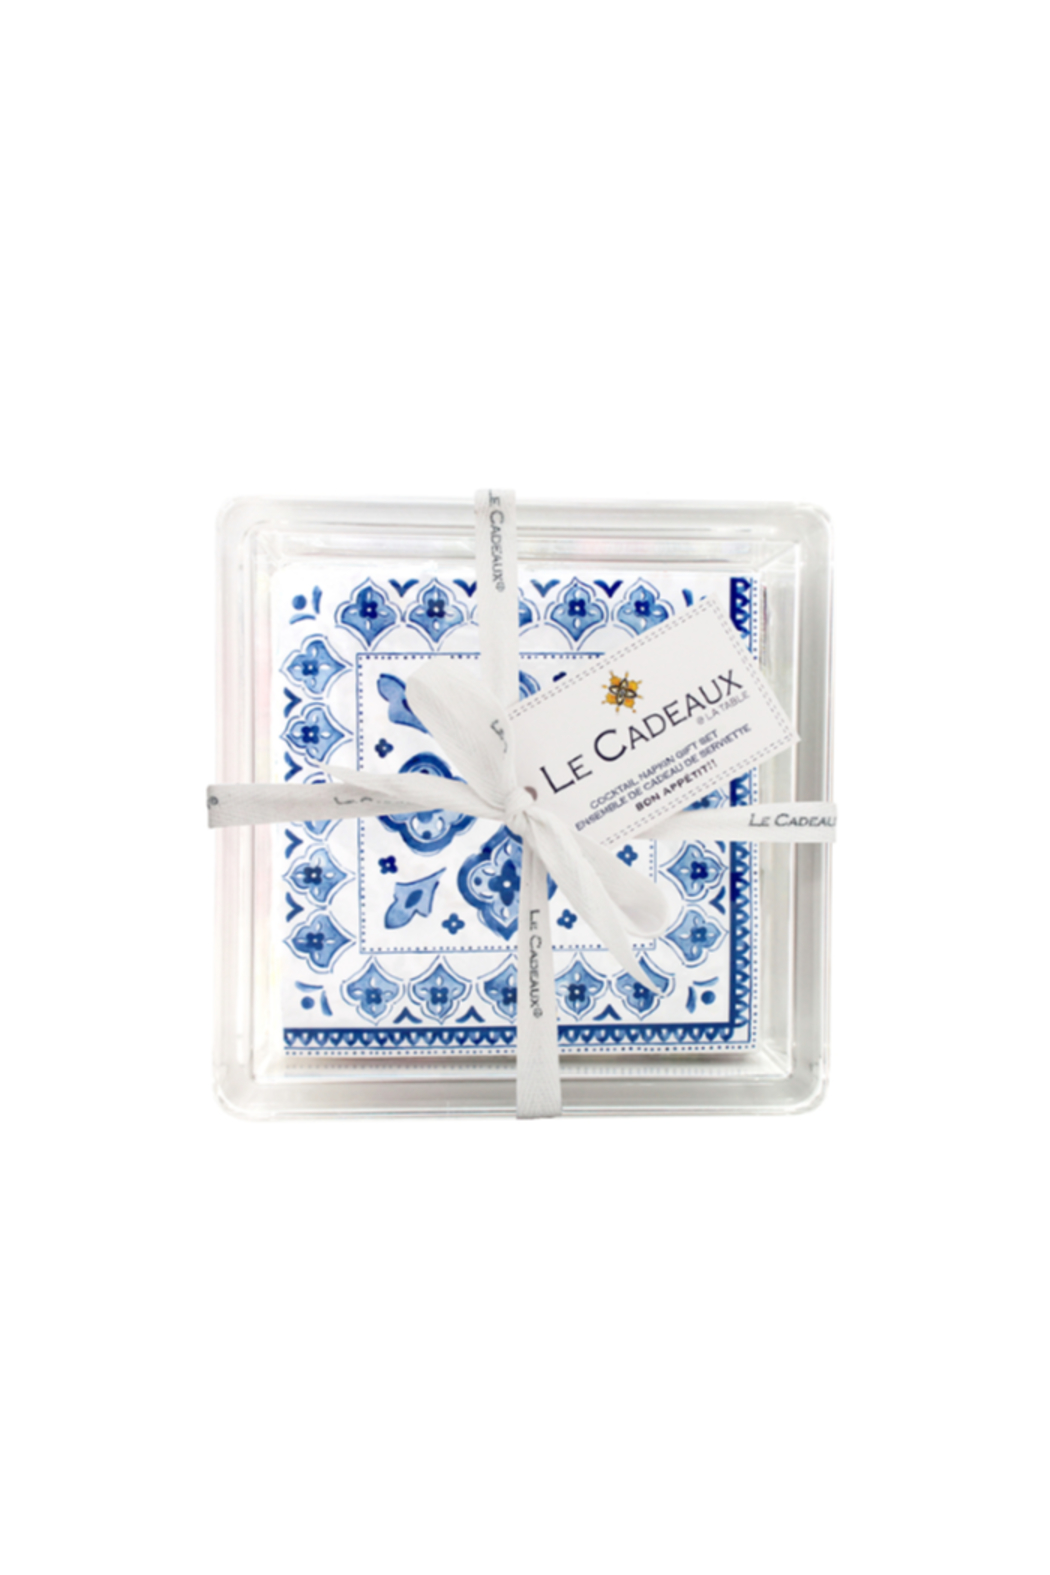 Le Cadeaux PATTERNED COCKTAIL NAPKINS WITH ACRYLIC TRAY - Front Cropped Image